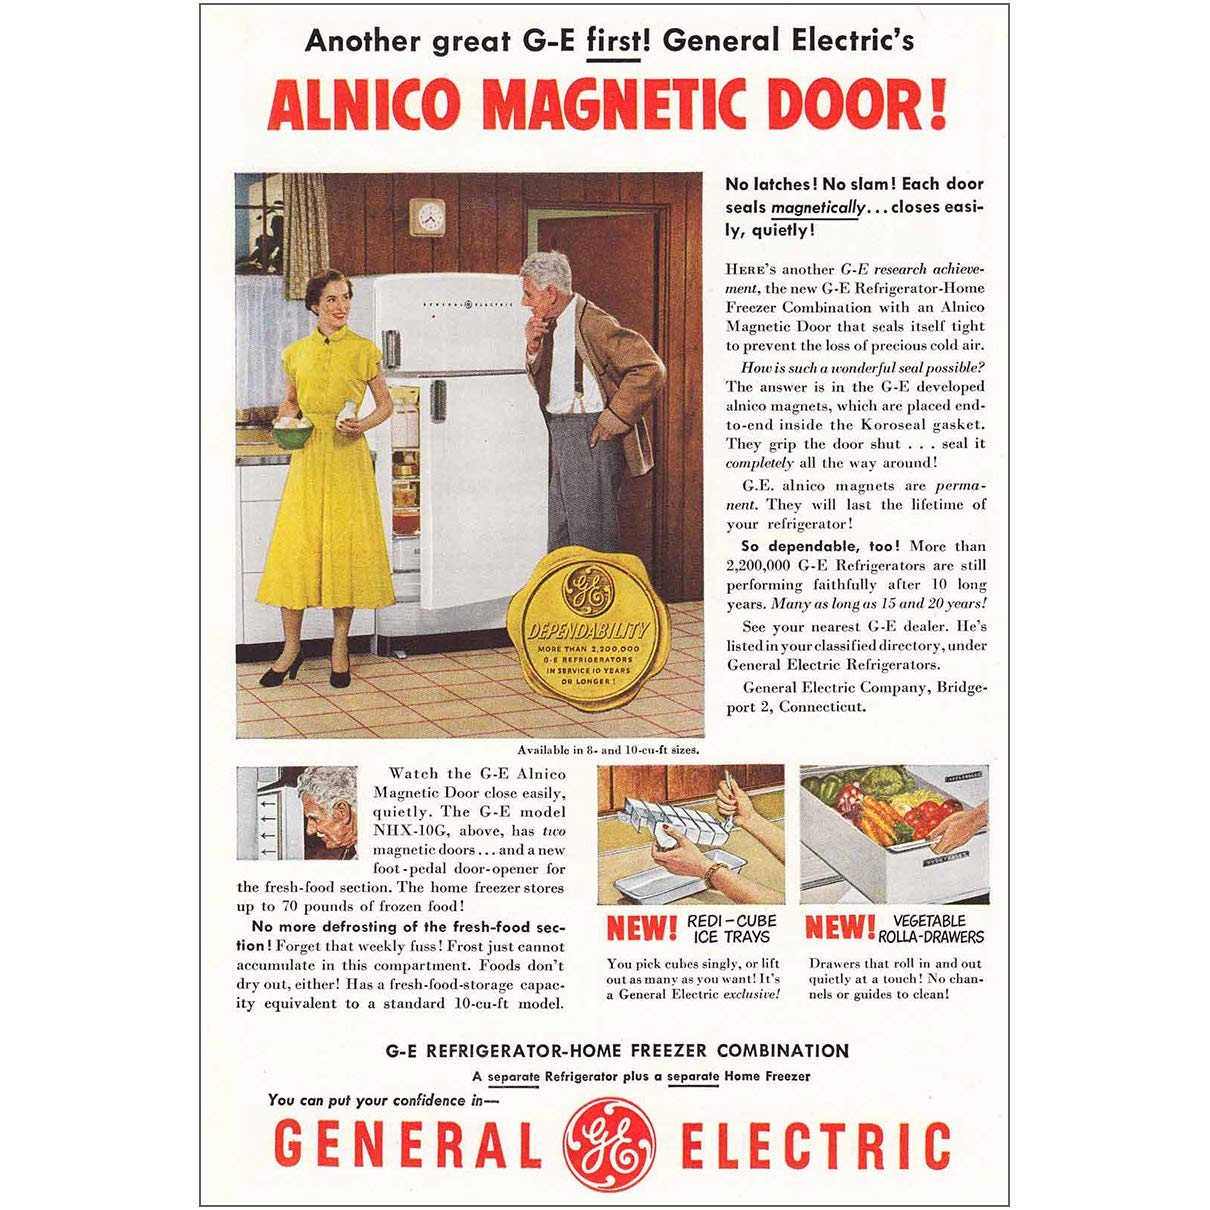 1950 General Electric Refrigerator: Alnico Magnetic Do, General Electric Print Ad